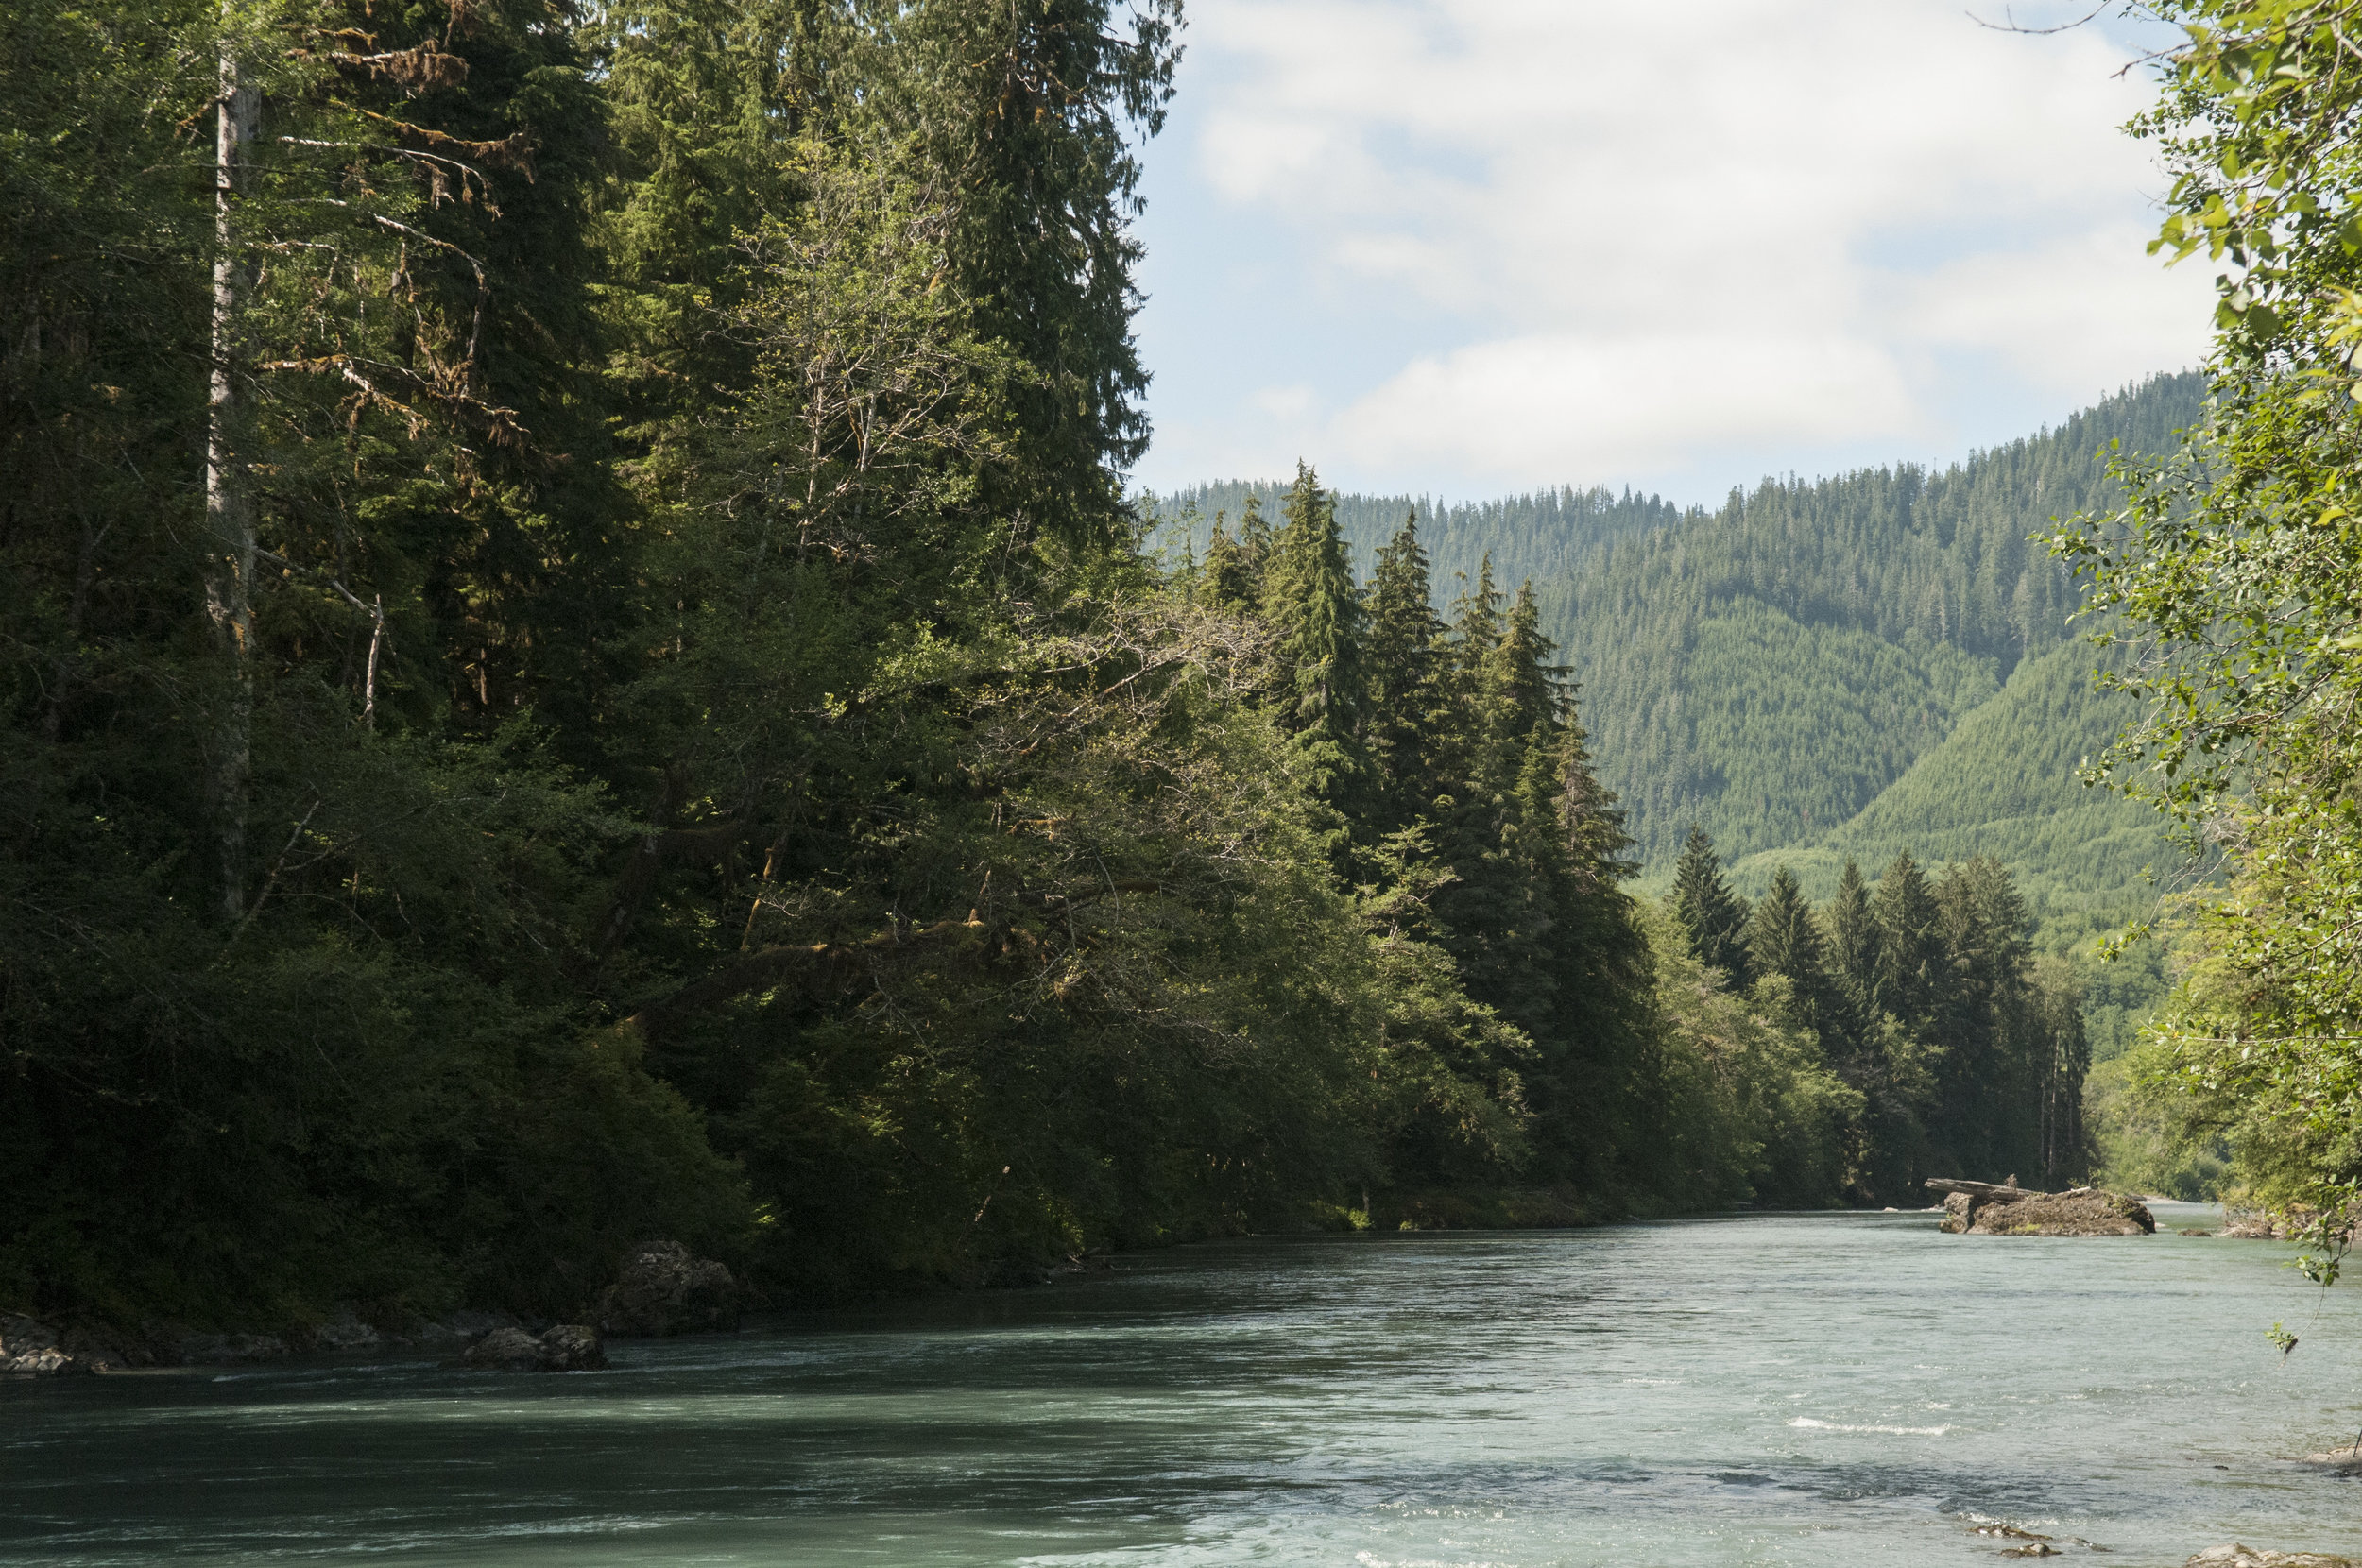 The Hoh River, which Paul Allen contributed money to protecting. © Nikolaj Lasbo / TNC